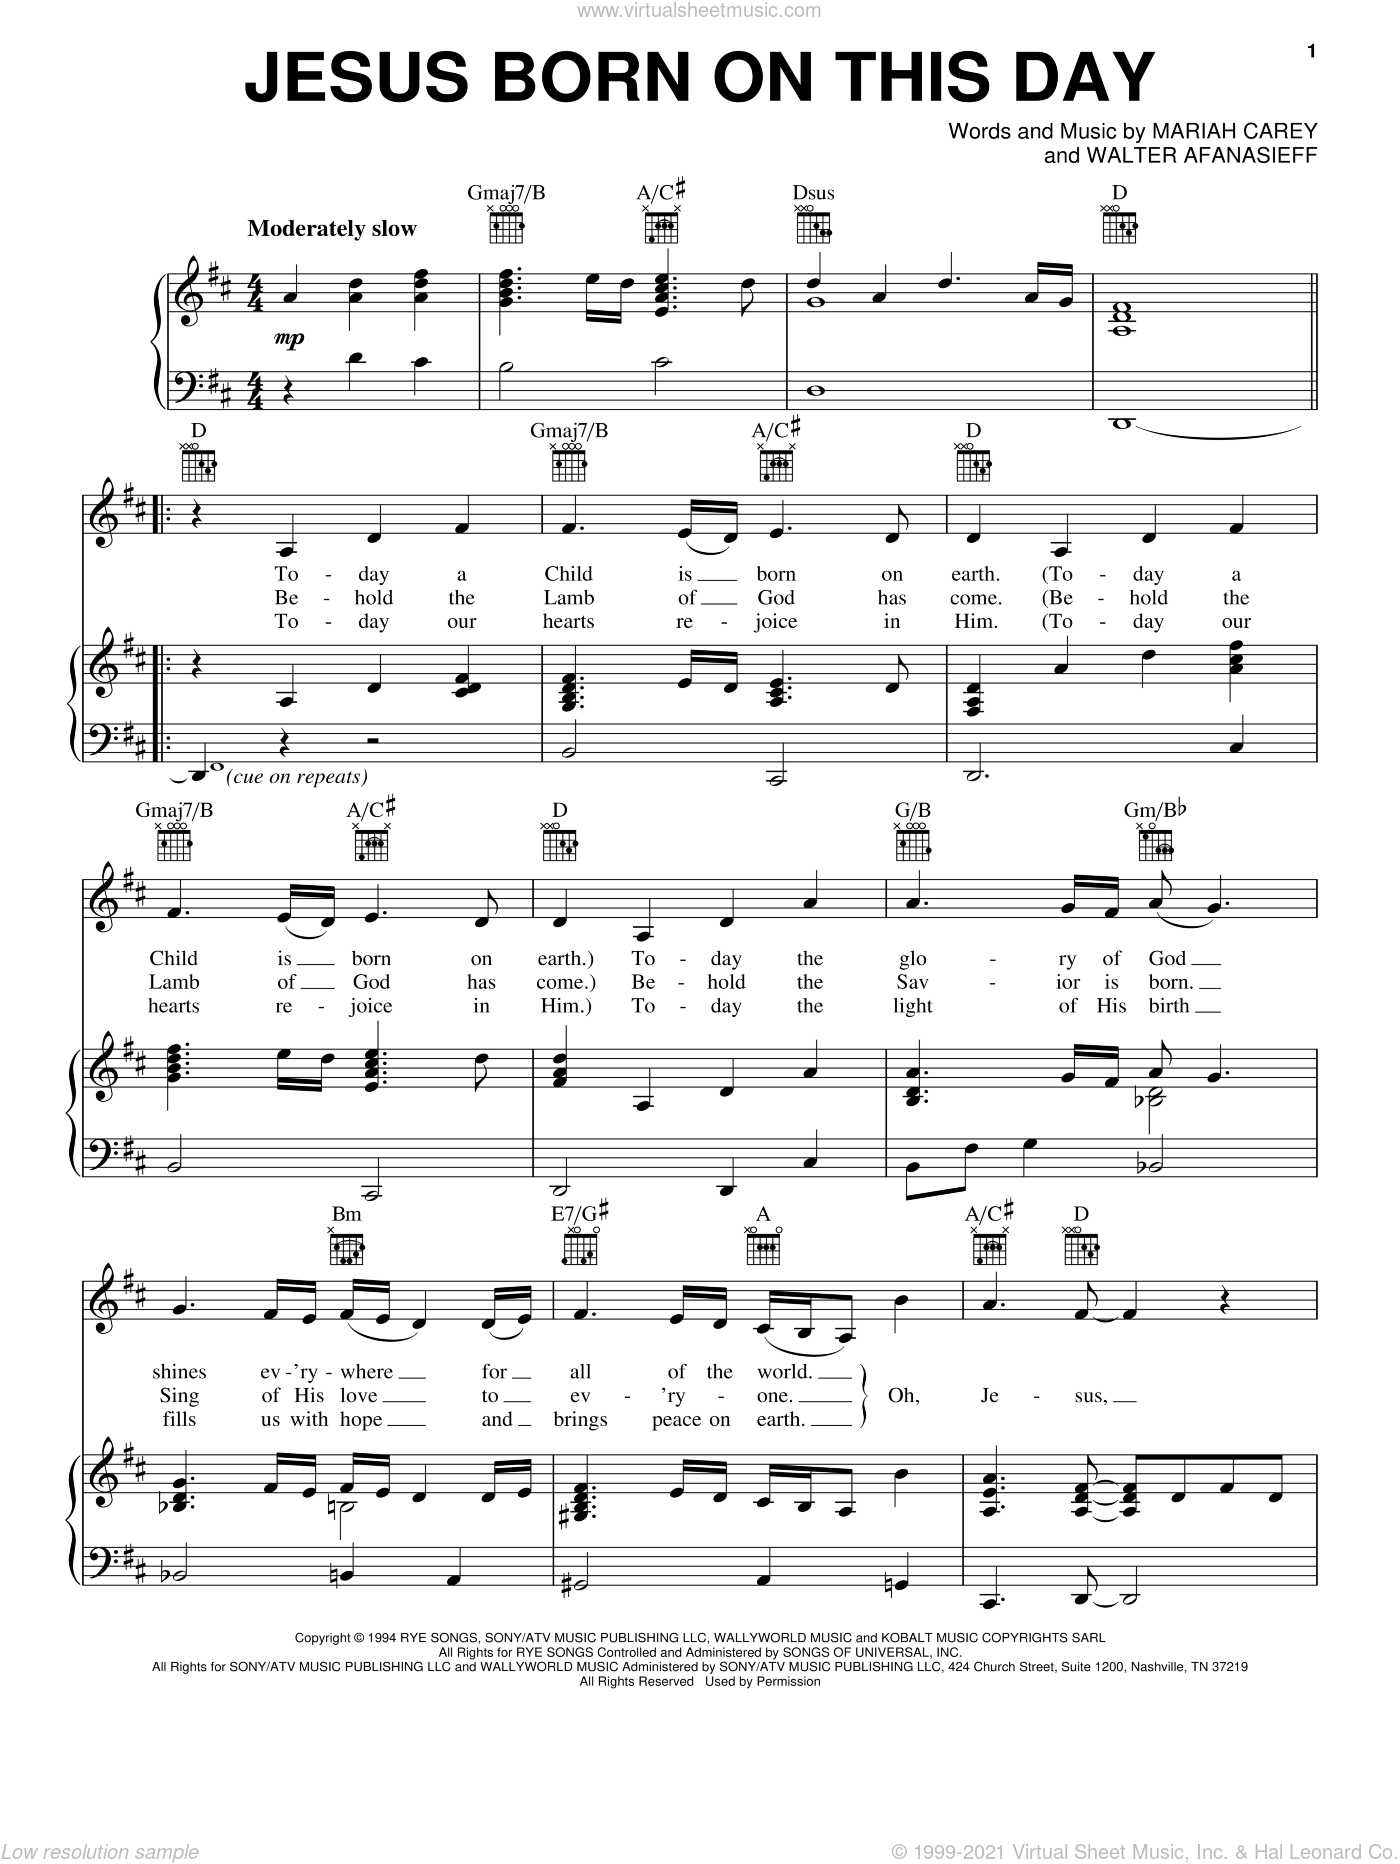 Jesus Born On This Day sheet music for voice, piano or guitar by Mariah Carey and Walter Afanasieff, intermediate skill level